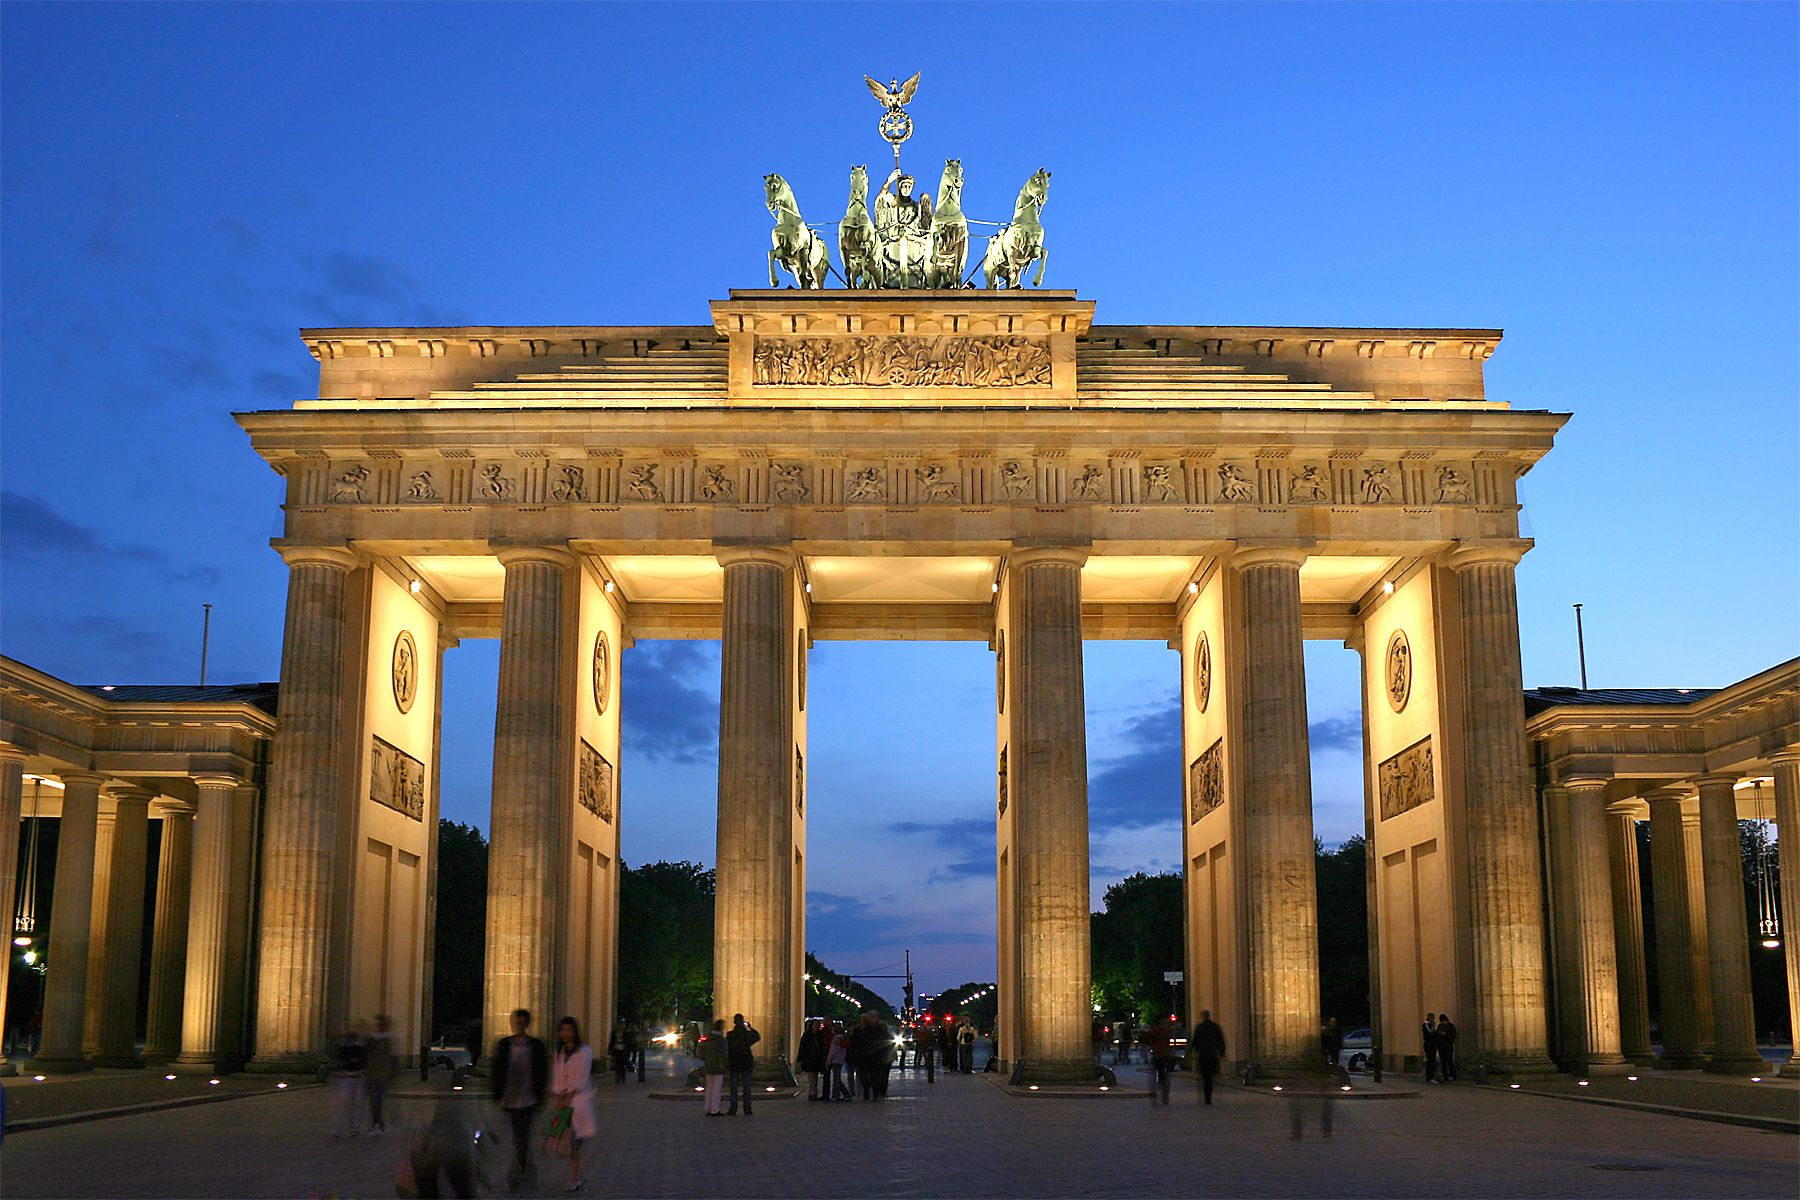 The Berlin Wall Falls Dreams Are Rebuilt Hearts In The Wind Attractions In Germany Brandenburg Gate Brandenburg